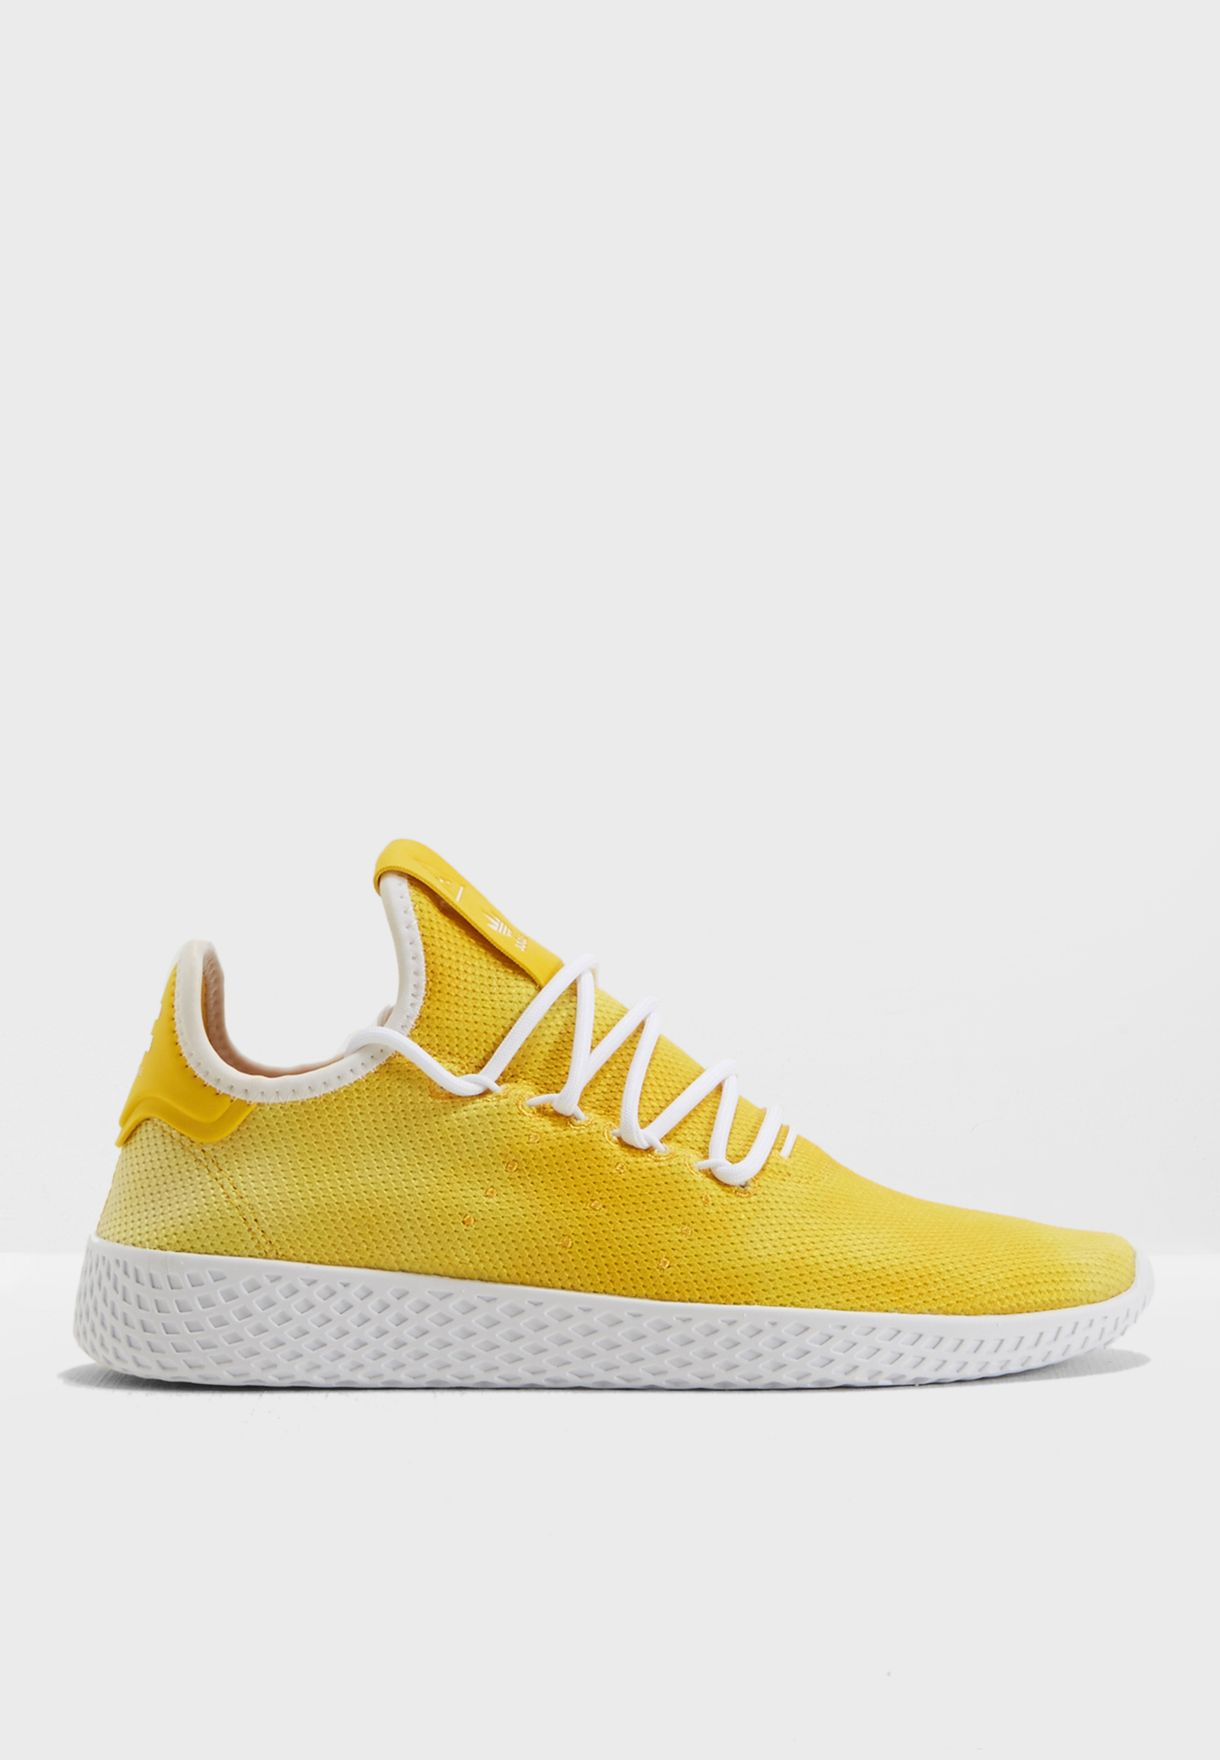 17a62514e2bf8 Shop adidas Originals yellow Pharrell Williams Hu Holi Tennis DA9617 for  Women in UAE - AD478SH74IER